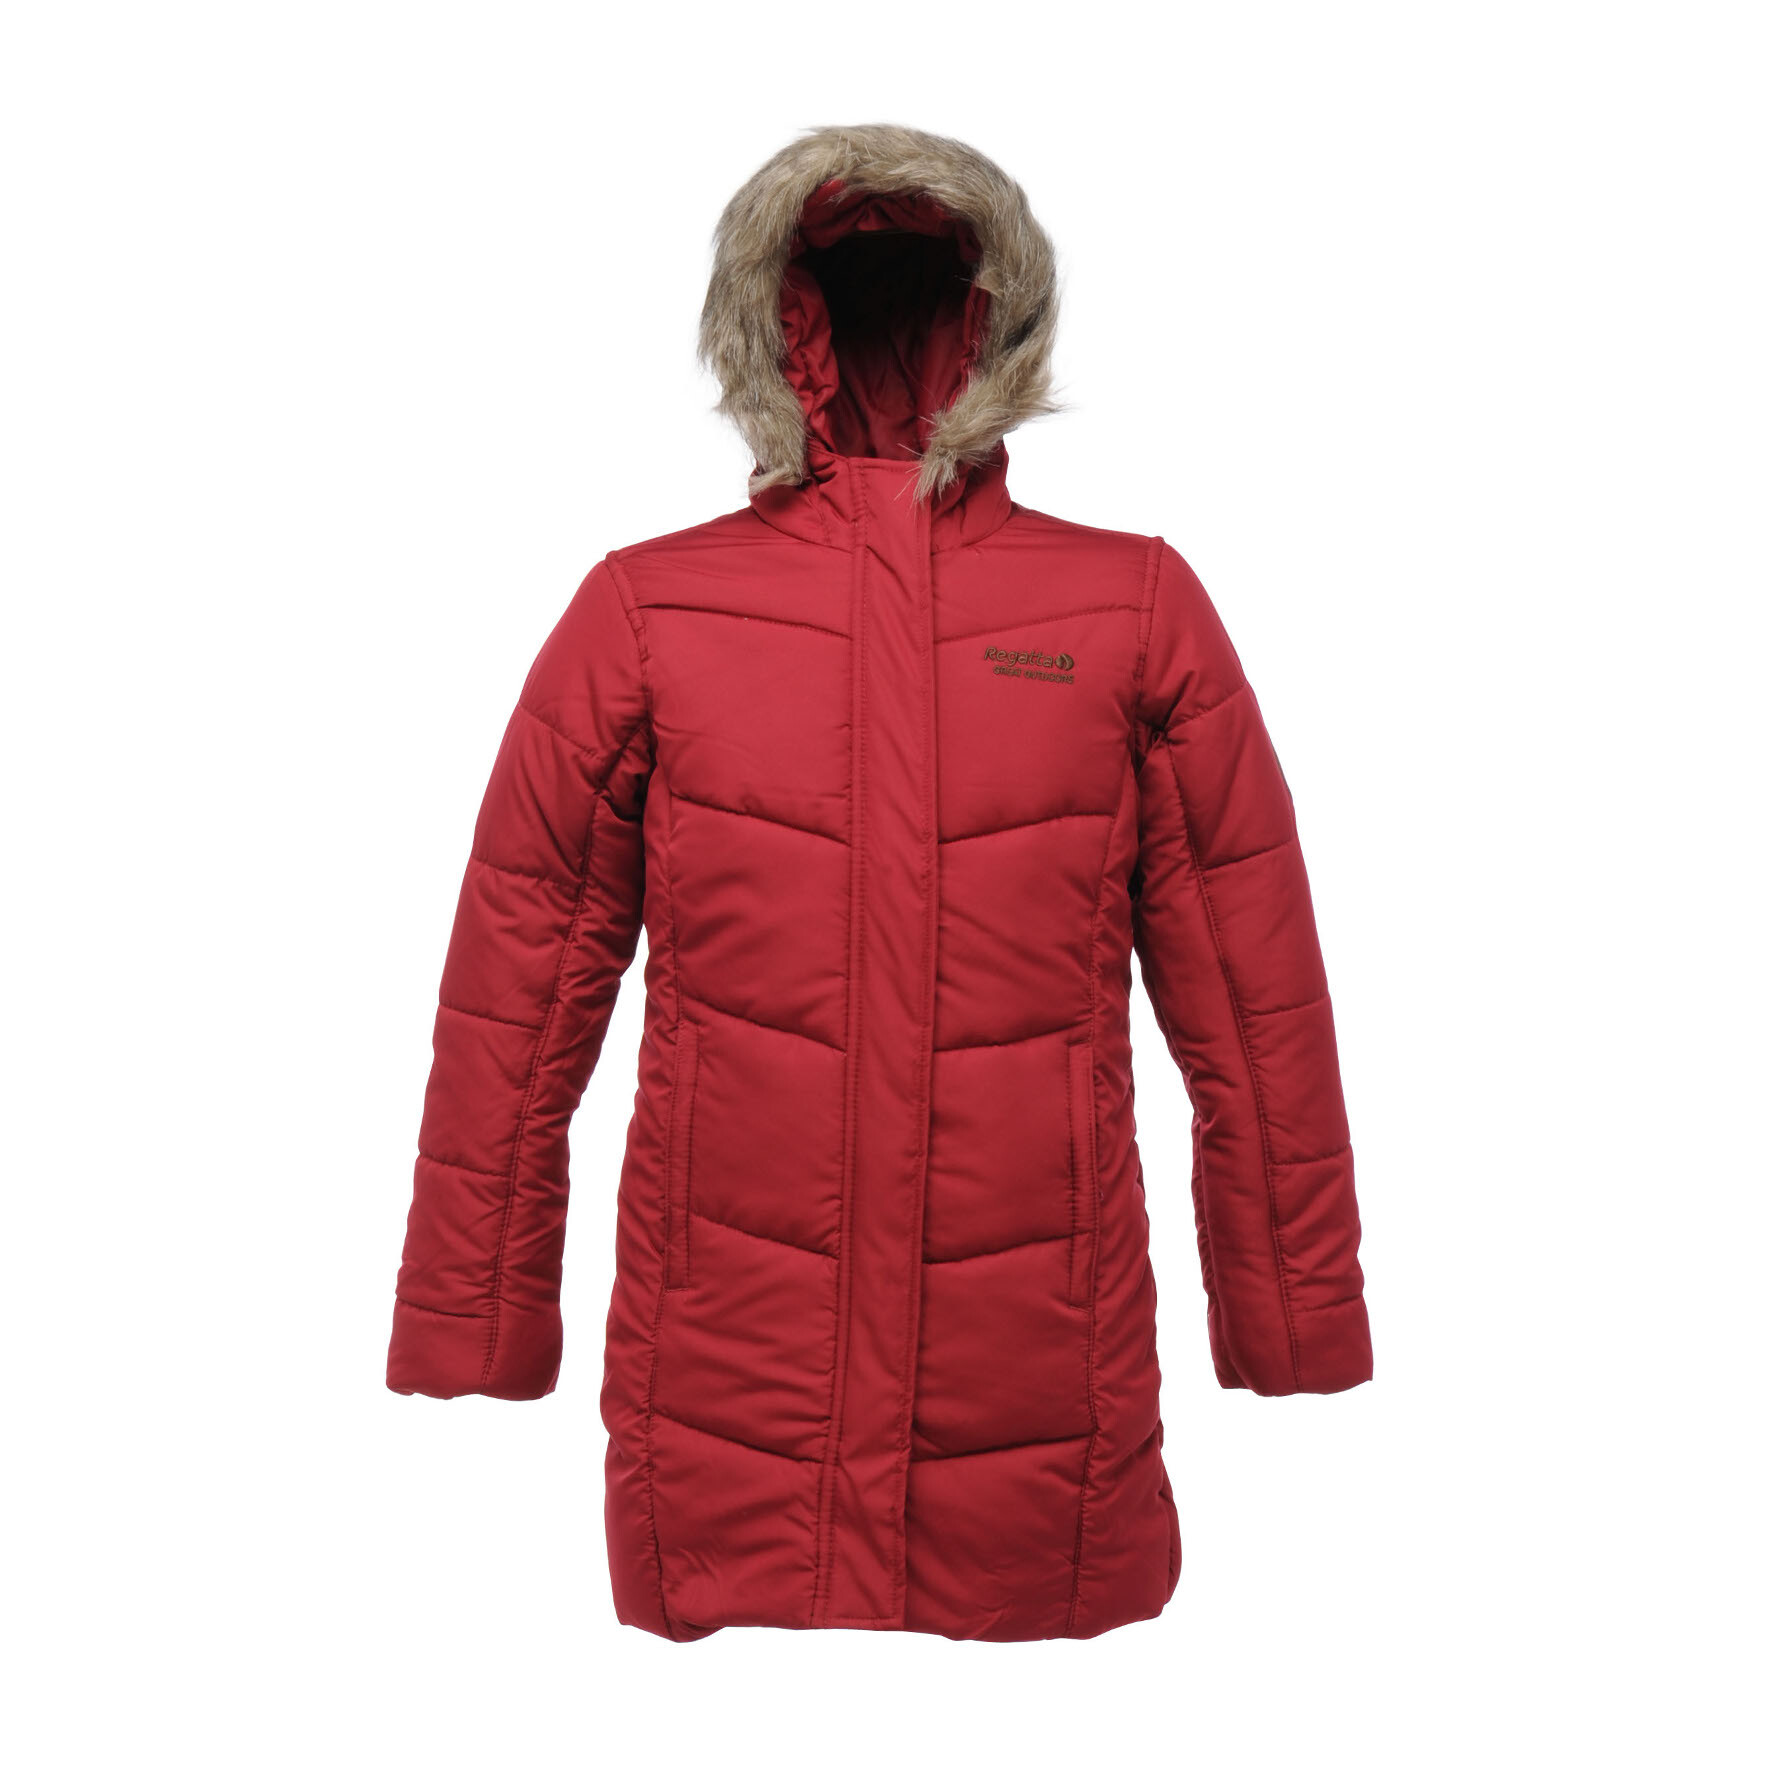 Regatta Blissfull Kids beetroot 176 jacke kinder~outdoor jacken kinder~outdoor jacke~jacke kinder~kinder jacke~outdoor jacken